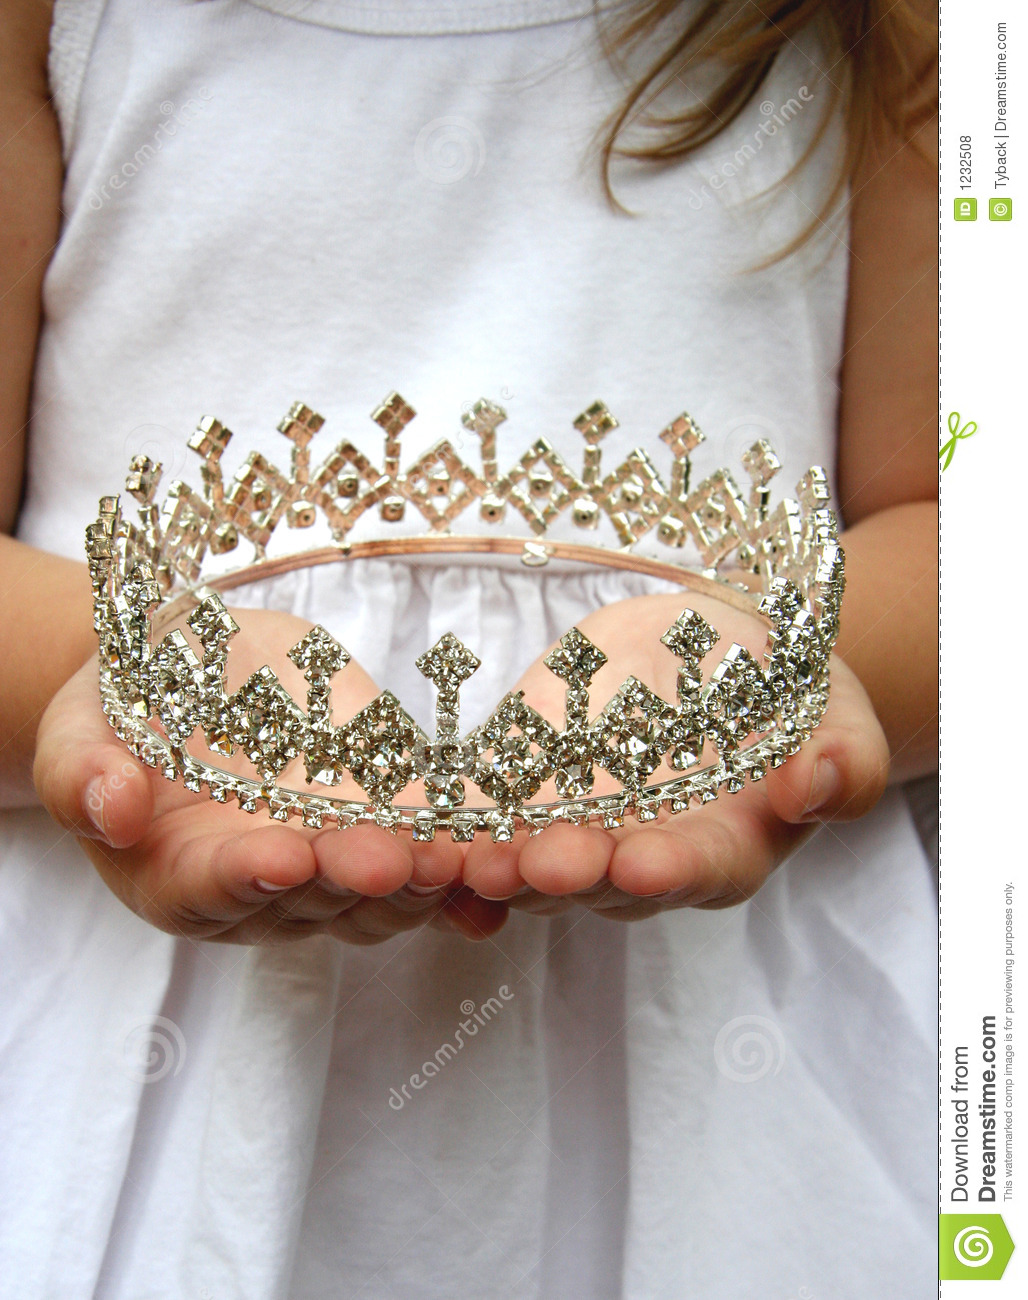 holding crown royalty free stock photos image 1232508 free crown clipart without background free crown clipart png